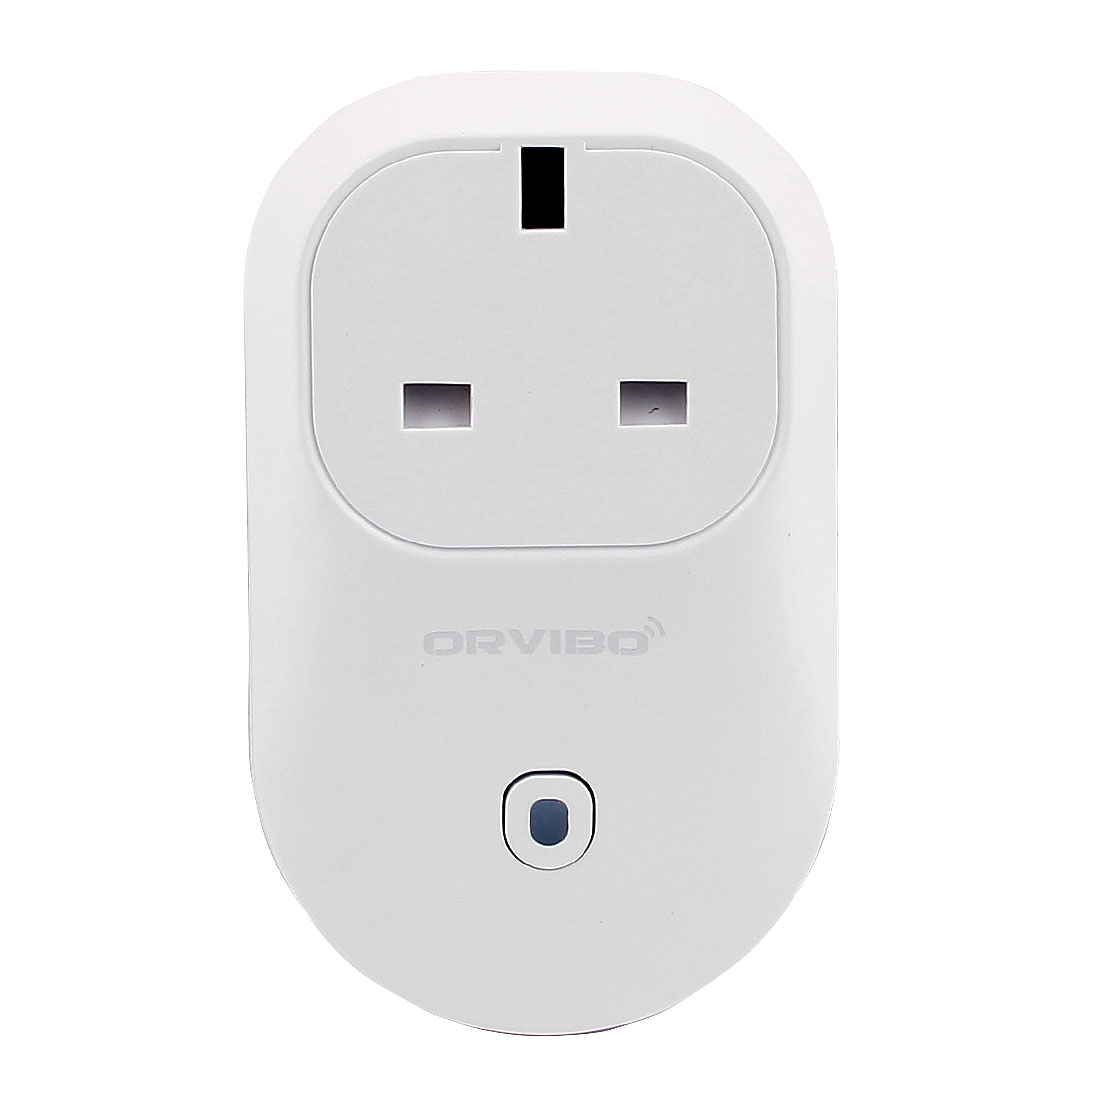 AC 100V-240V UK Plug Smart WiFi Power UK Socket Timer Switch Wireless Remote Control